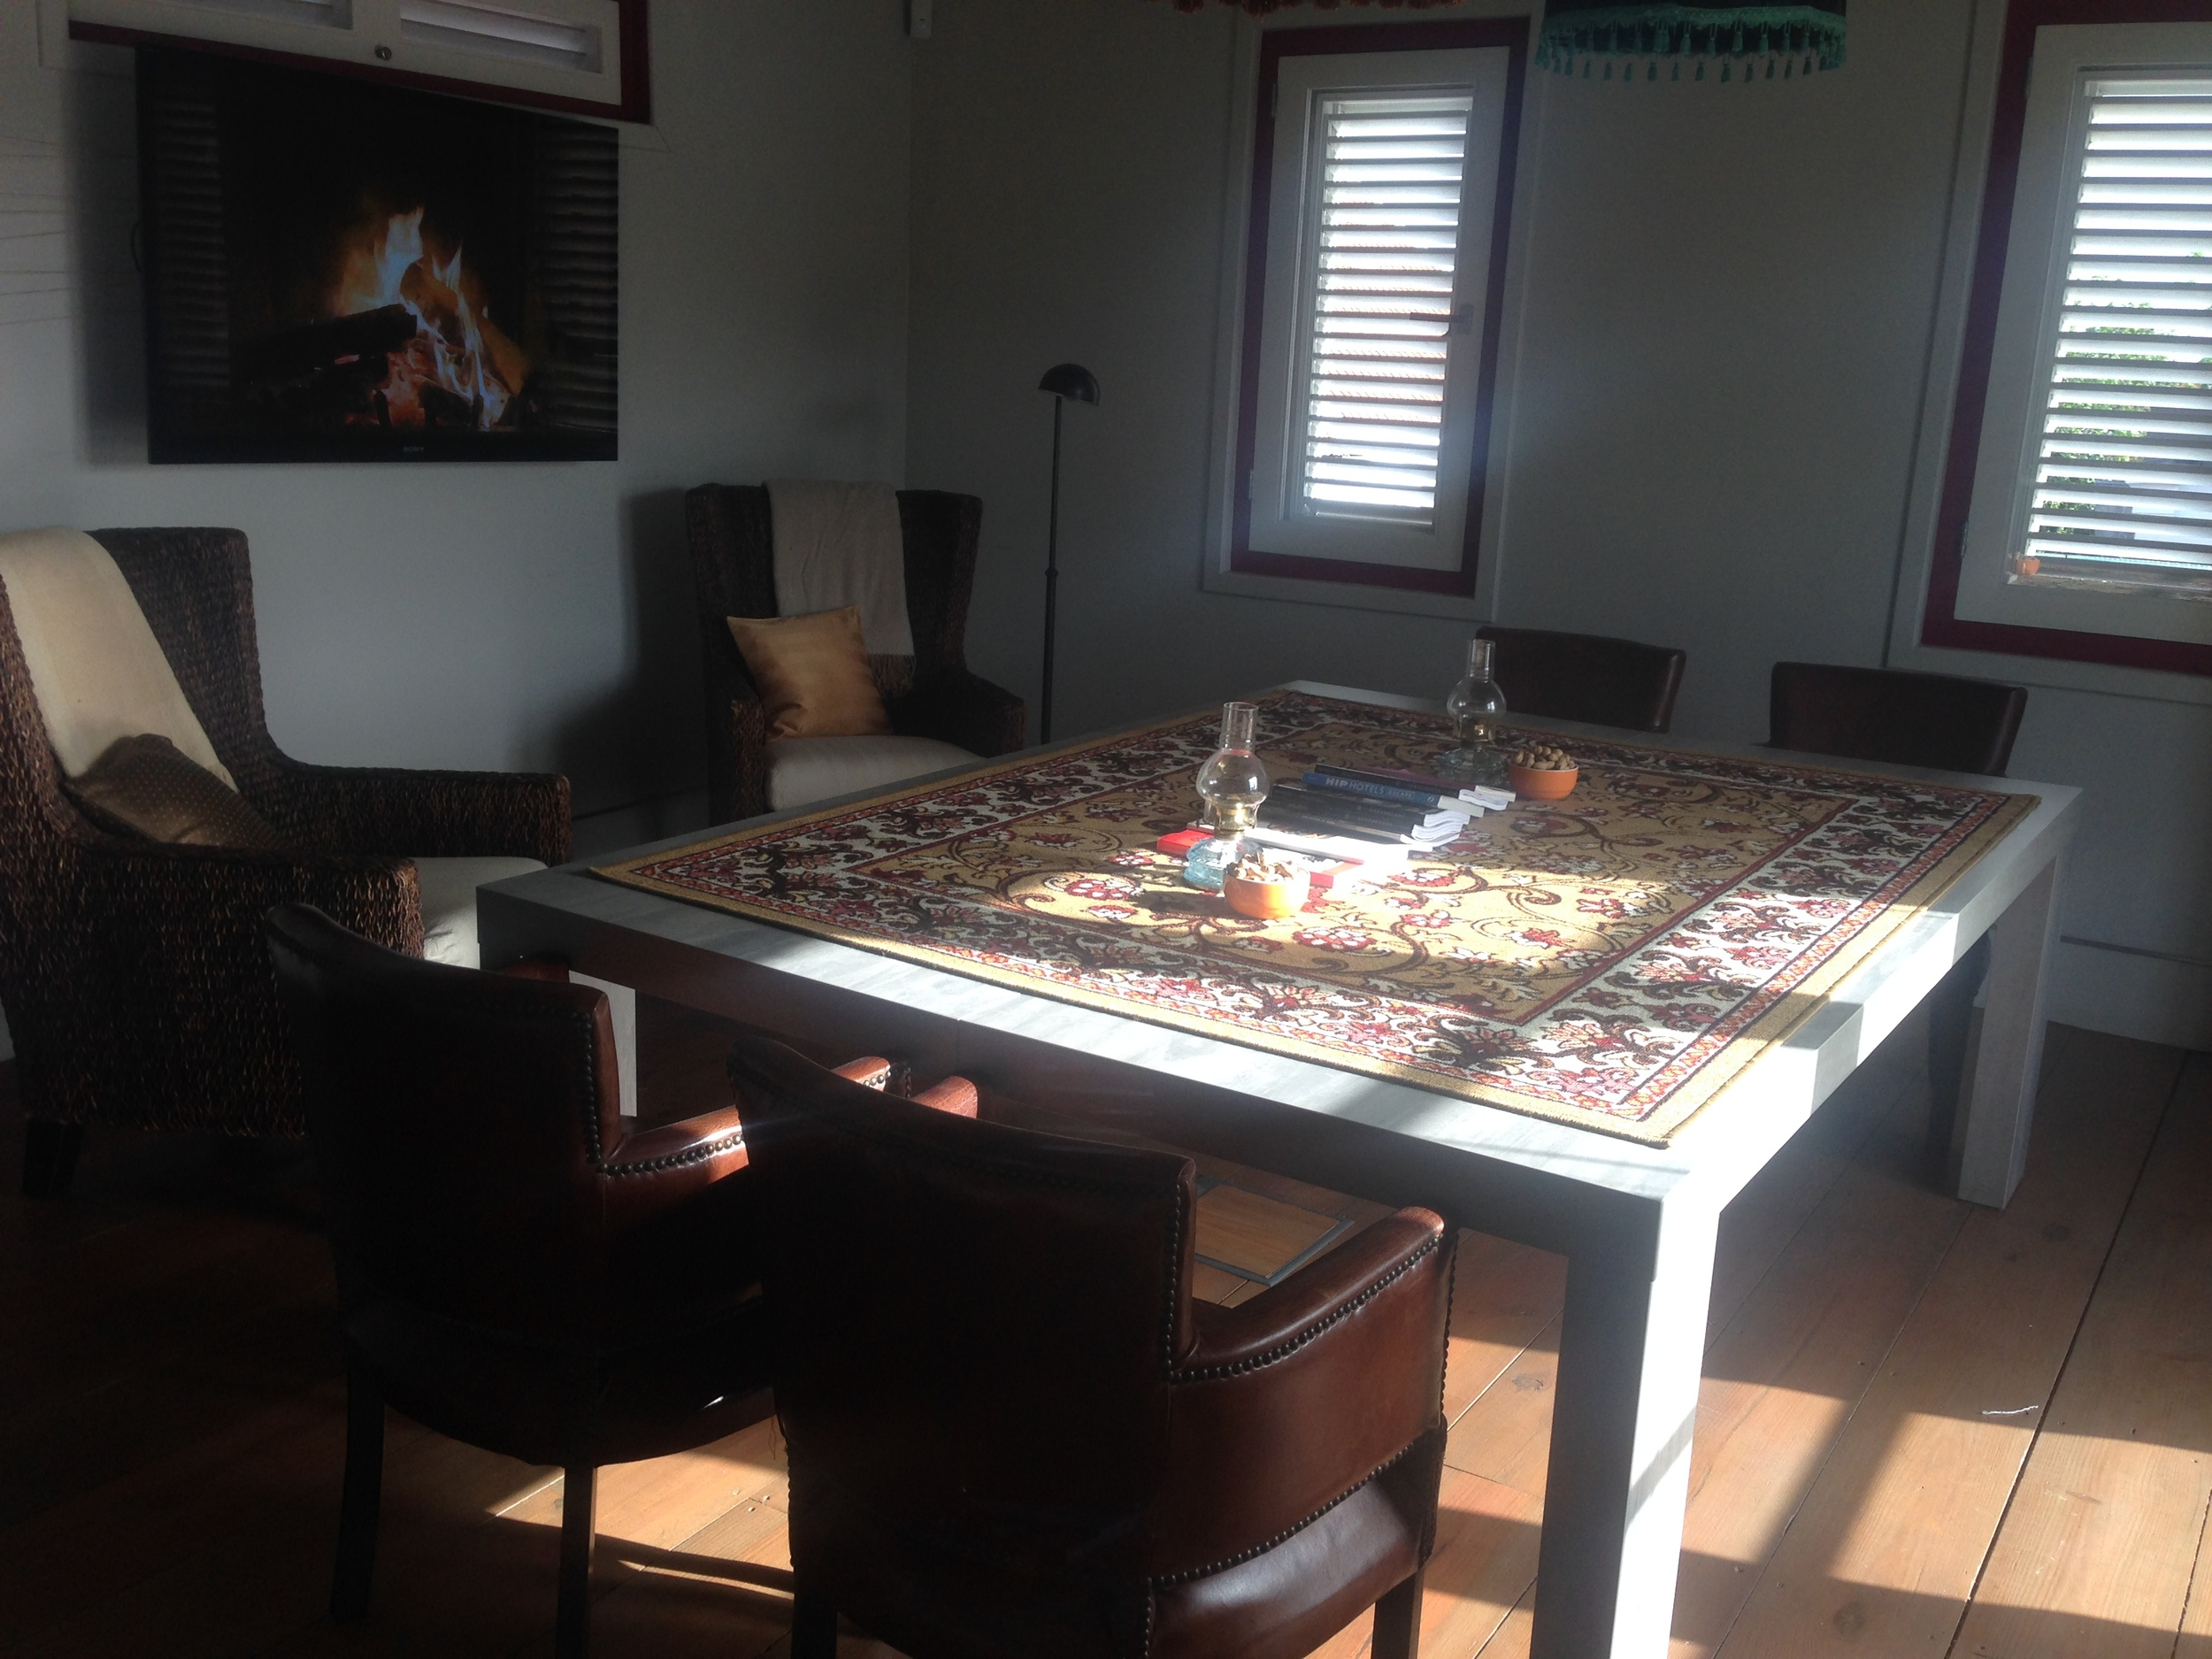 The reading table with fireplace